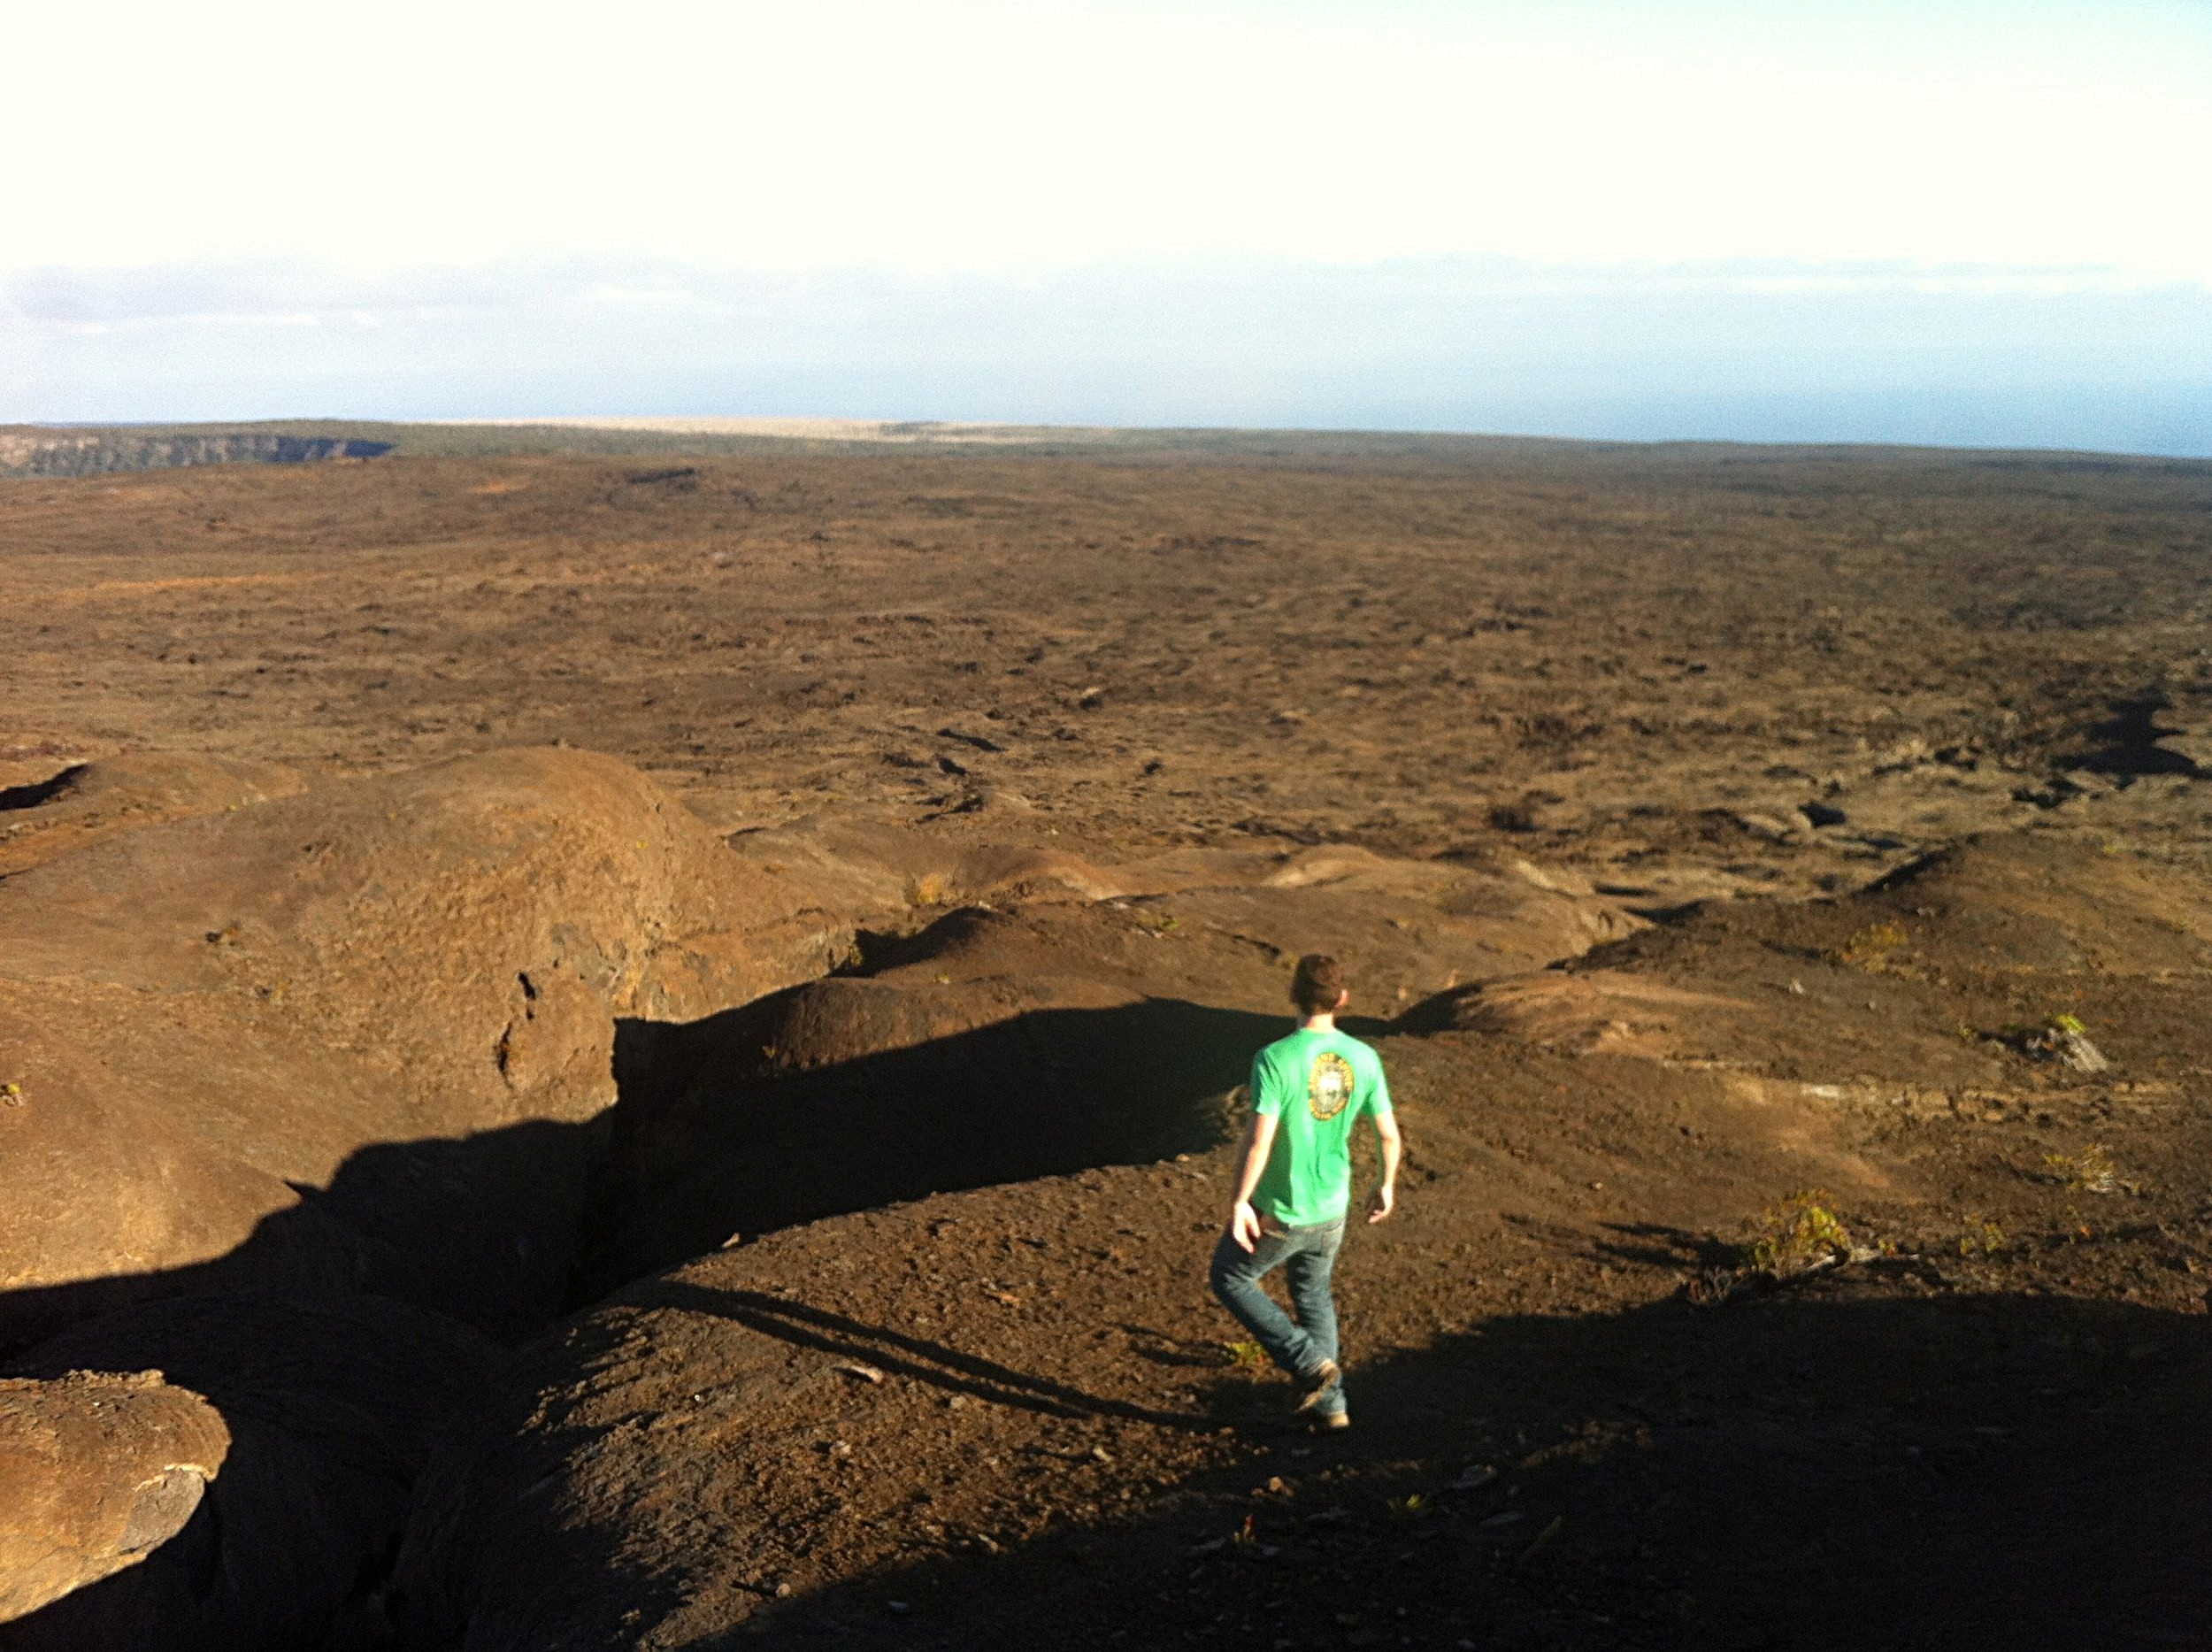 David Susko walks on lava flows in Hawaii. The Planetary Science Lab group at LSU has worked in Hawaii to collect samples that could be analyzed in a laboratory setting and compared with the rocks in the Elysium Volcanic Province on Mars.